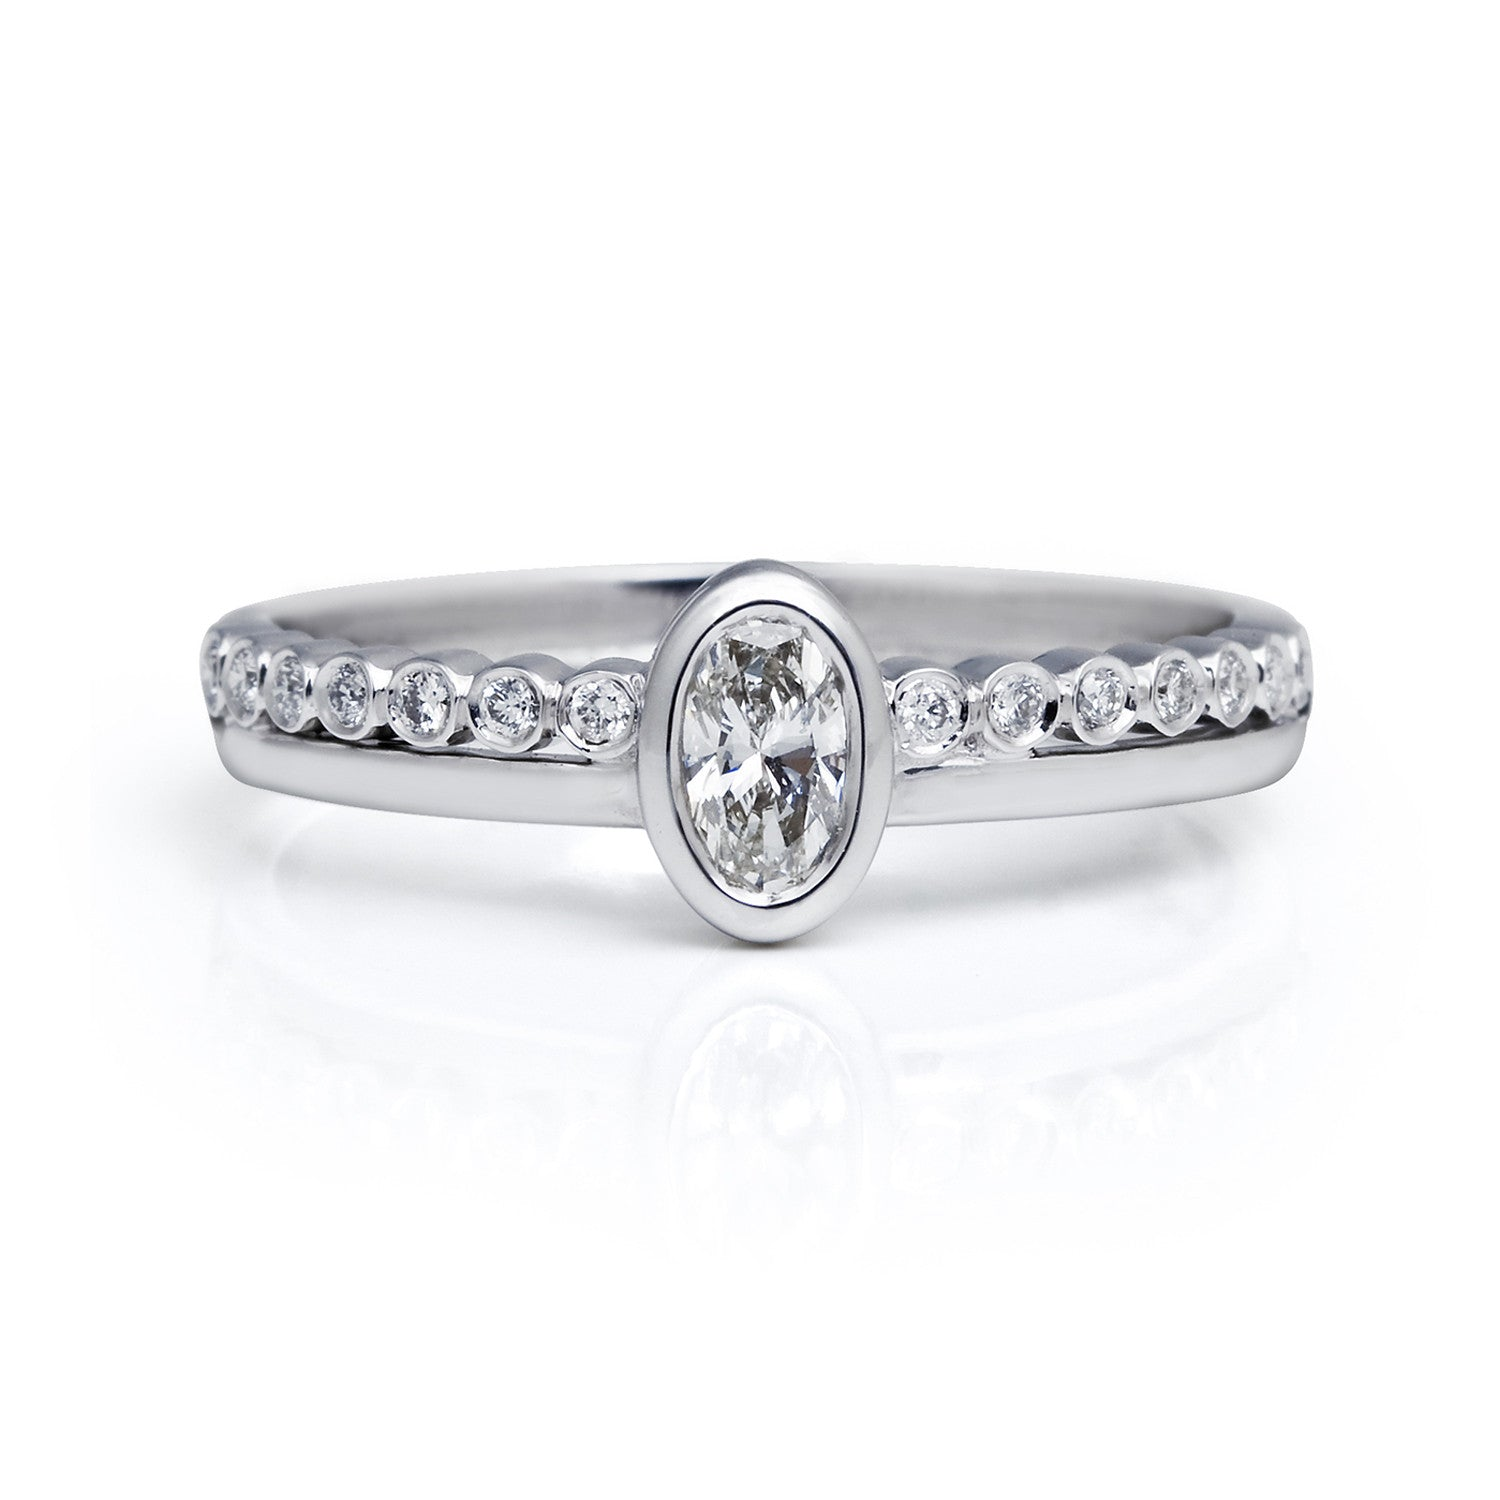 Bespoke Oval Diamond Engagement Ring